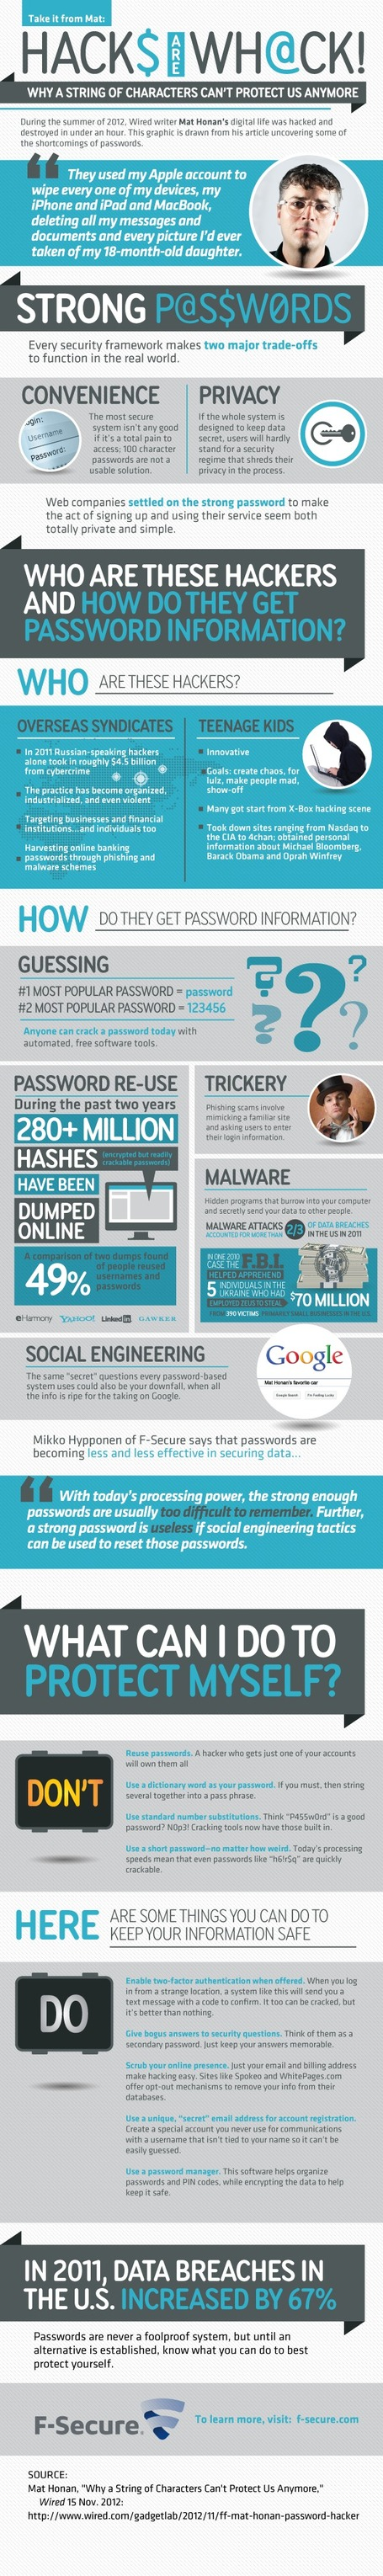 Hacking lessons learned: how to cover your digital ass [Infographic] | IT (Systems, Networks, Security) | Scoop.it